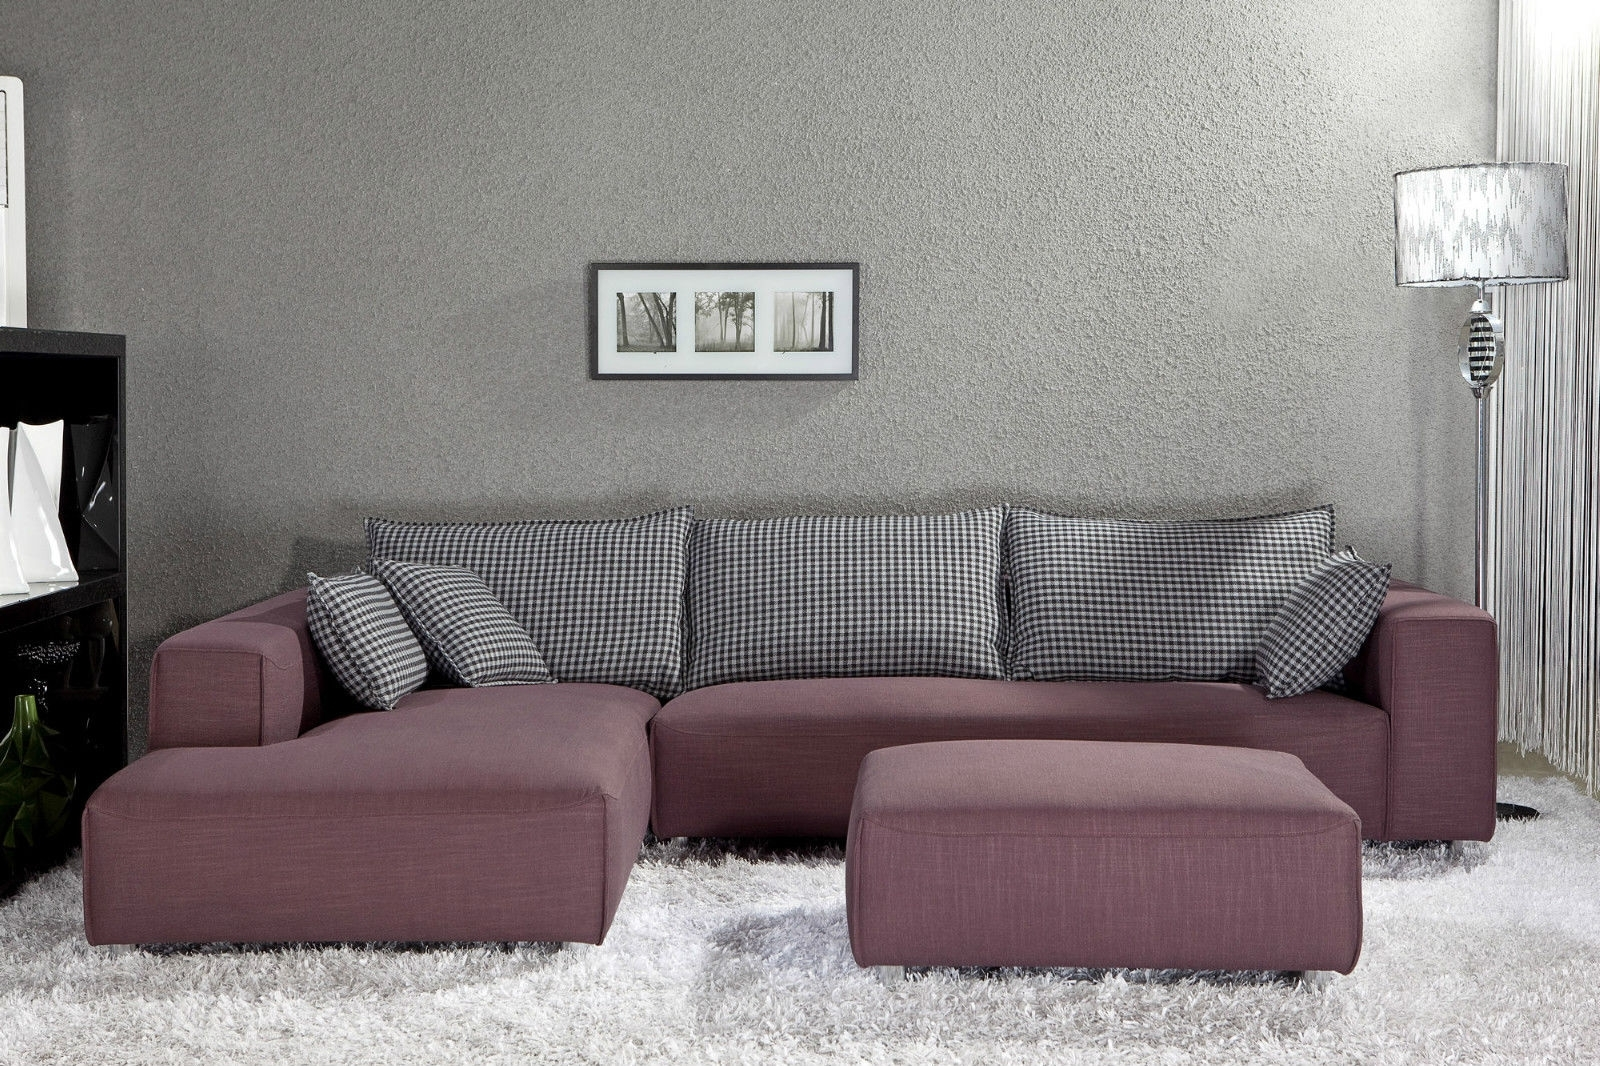 Most Popular Sofa : Bedroom Sofa Narrow Chaise Sofa Grey Sofa Leather Chaise Inside Narrow Spaces Sectional Sofas (View 6 of 15)